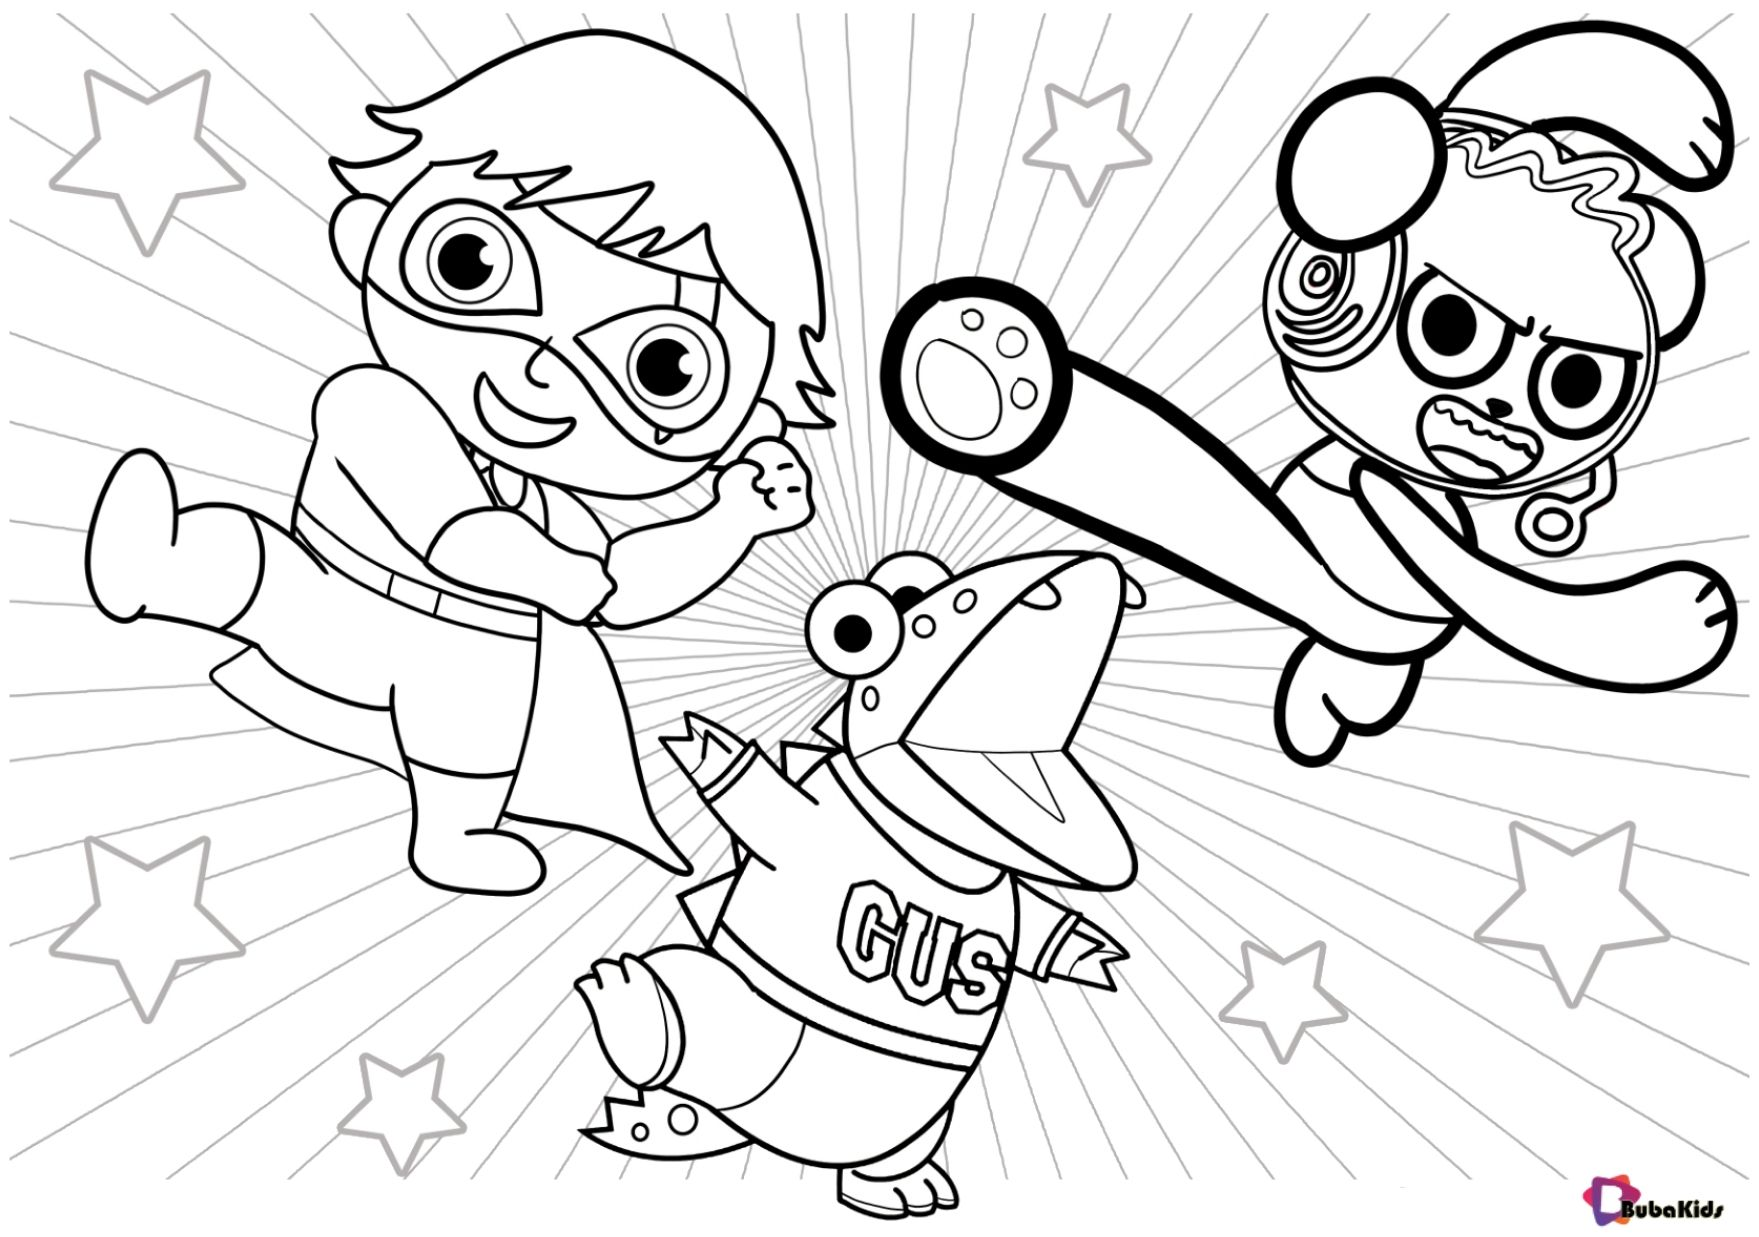 Ryan S World Printable Coloring Page Collection Of Cartoon Coloring Pages For Teenage Prin Bunny Coloring Pages Cartoon Coloring Pages Printable Coloring Pages